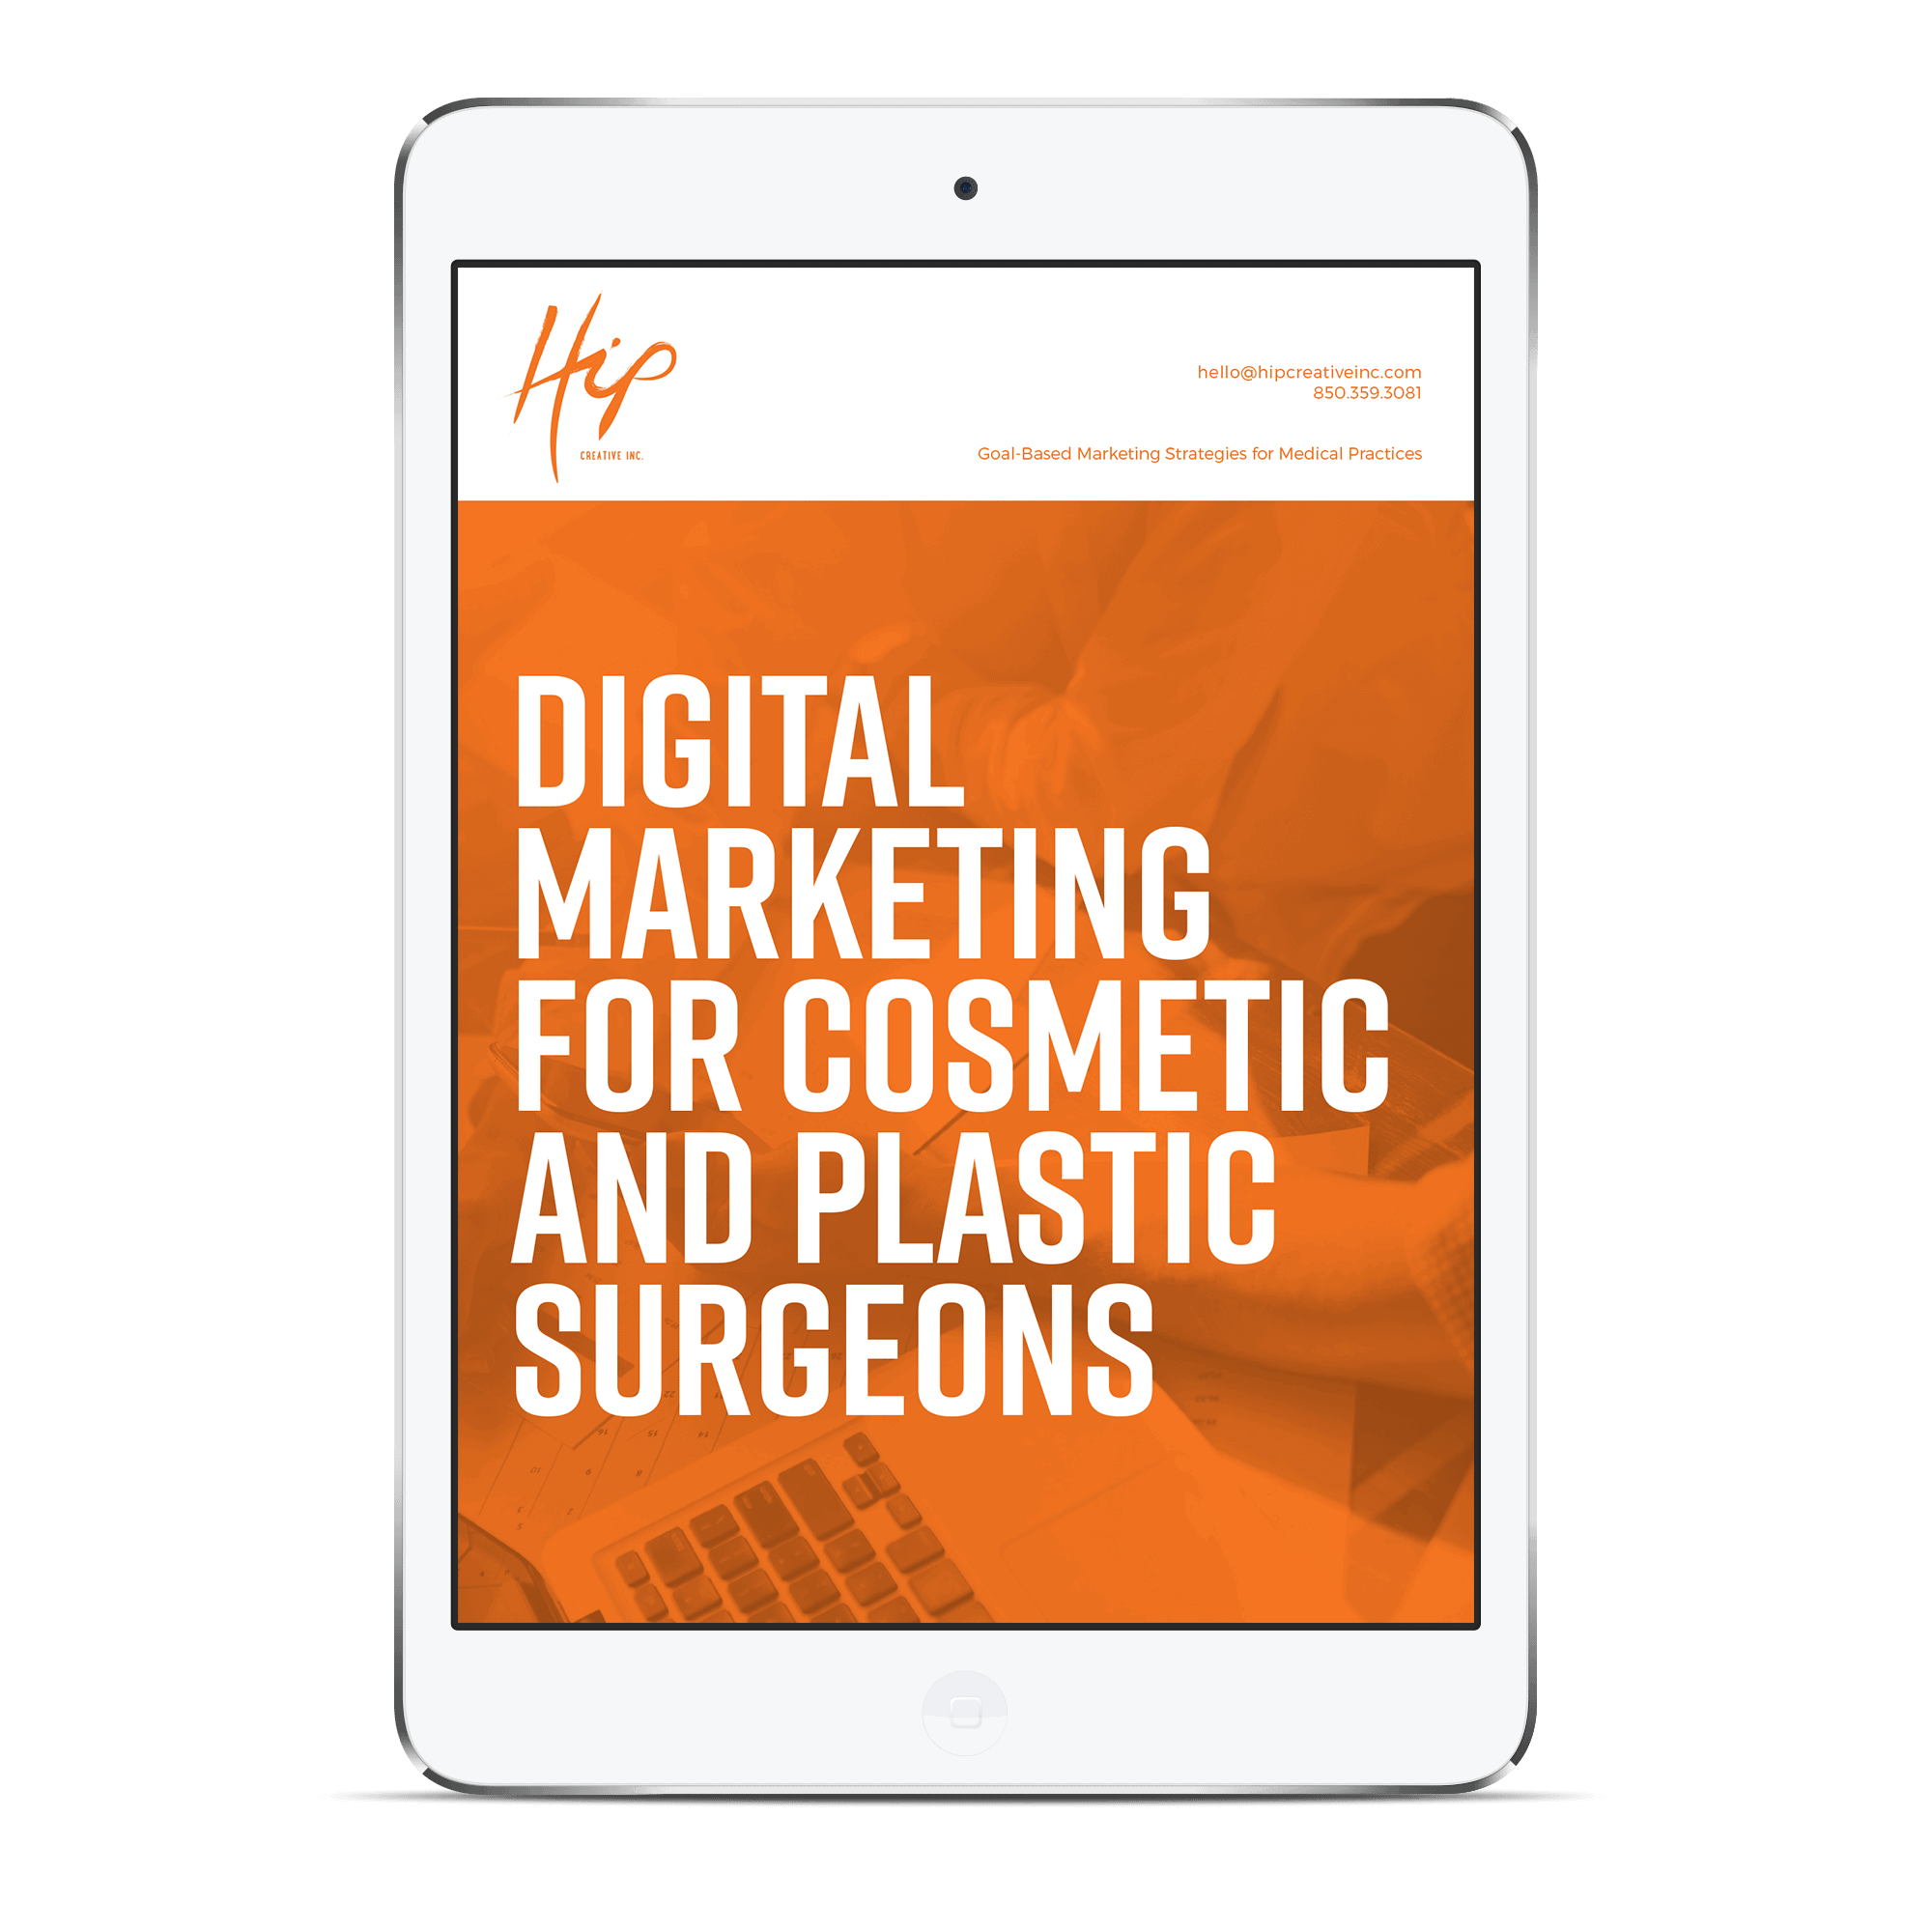 Digital Marketing for Cosmetic and Plastic Surgeons iPad